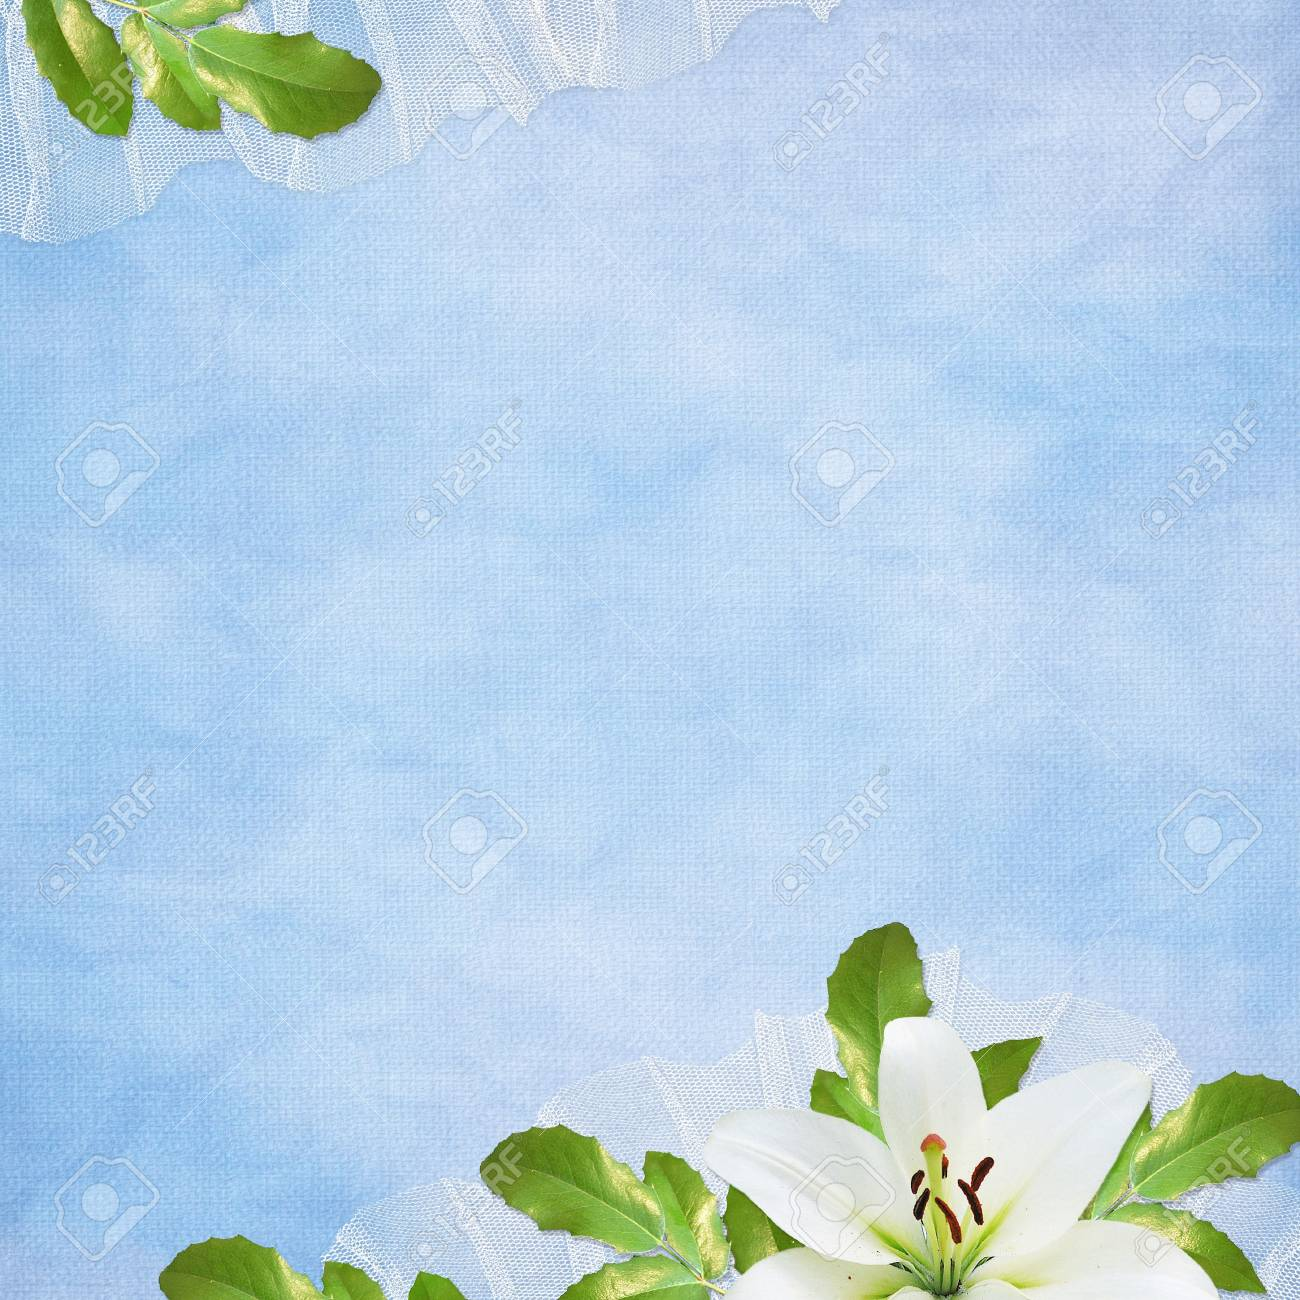 Card for the holiday  with flowers on the abstract background Stock Photo - 6975443